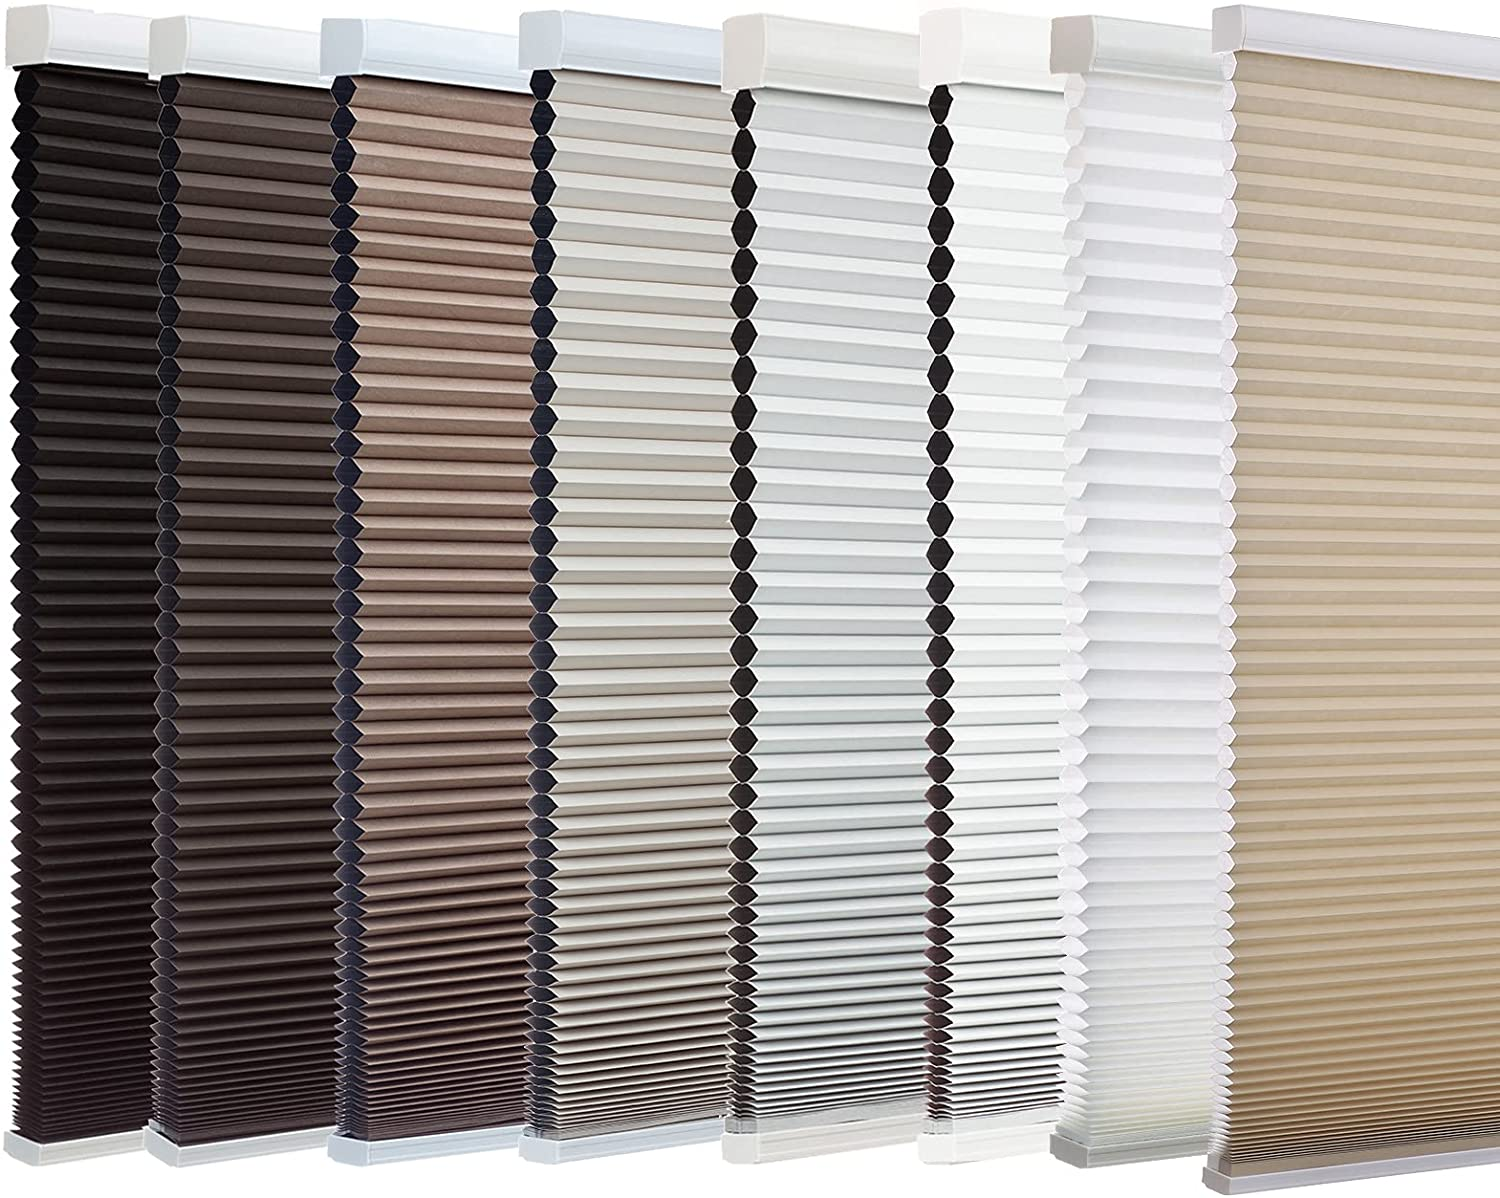 Changshade Cordless Blackout Cellular Shade, No Tools Installation, Honeycomb Shade for Bedroom, Kitchen, Children Room, Room Darkening Pleated Window Shade, 31 inches Wide, Light Brown CEL31LB72A